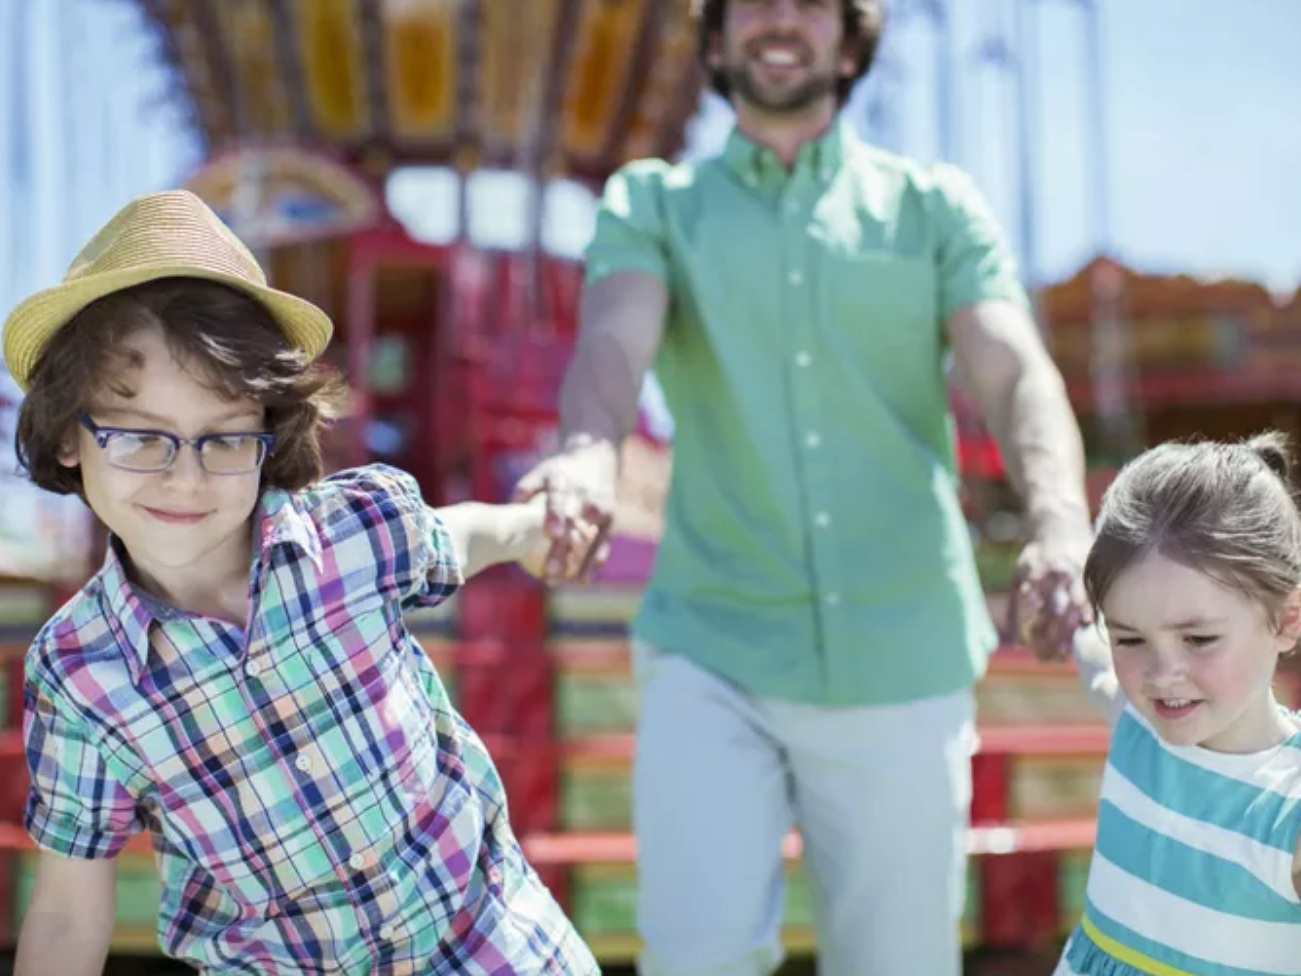 Safety Tips for Families at Amusement Parks – verywellfamily